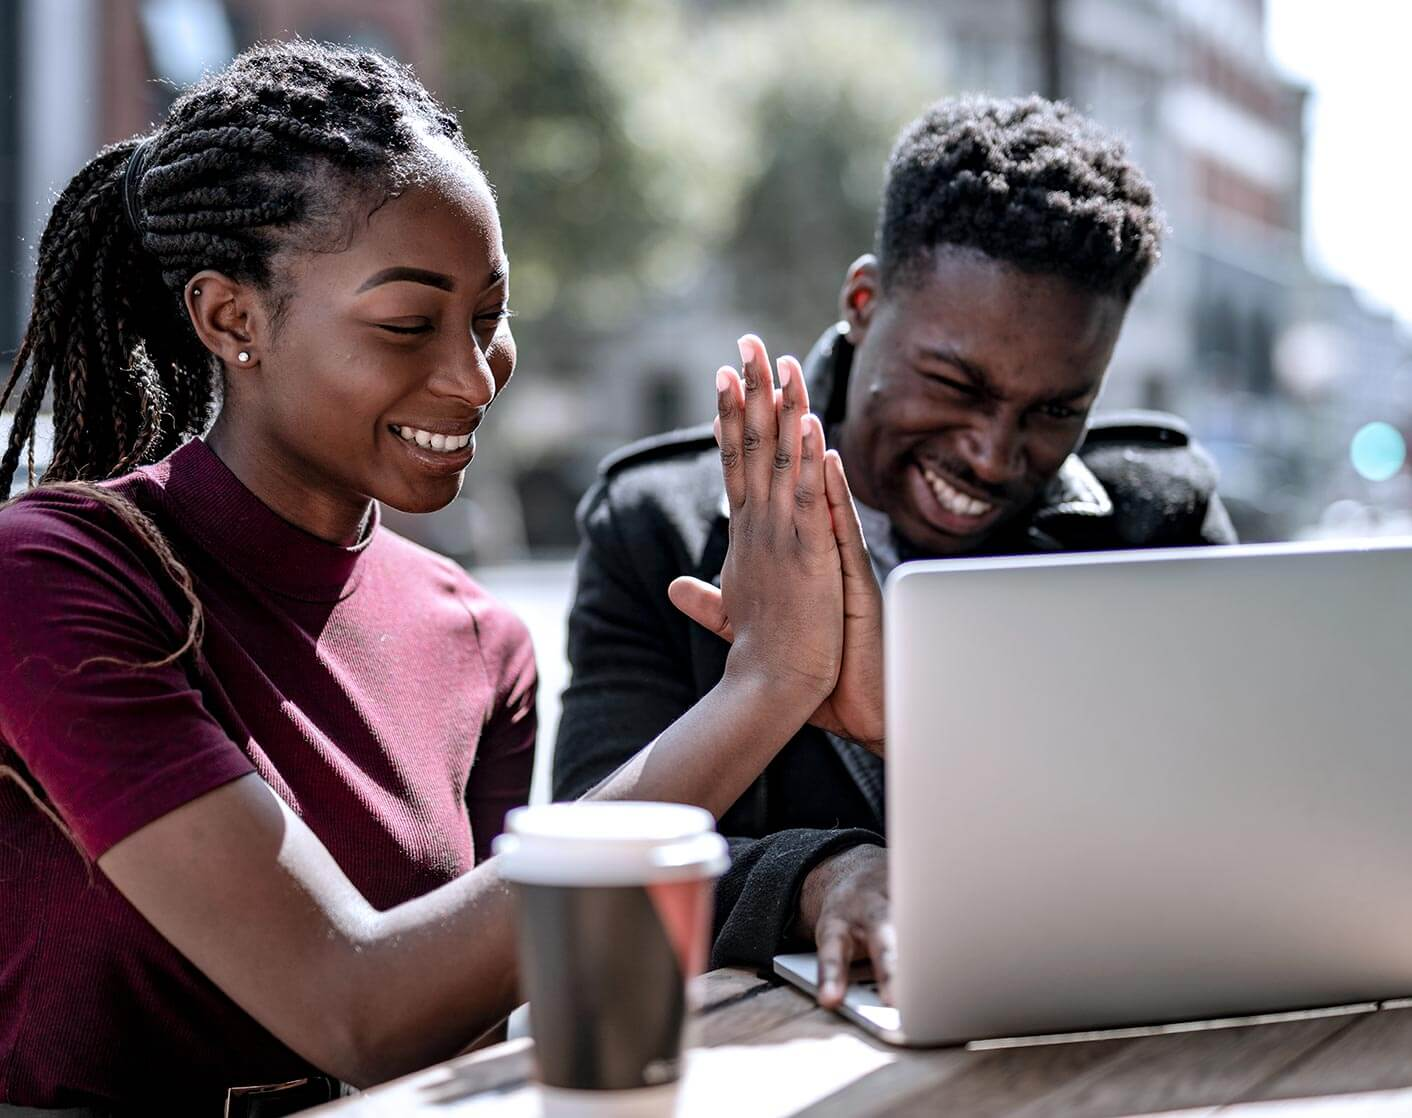 Black woman and black man high five looking at laptop